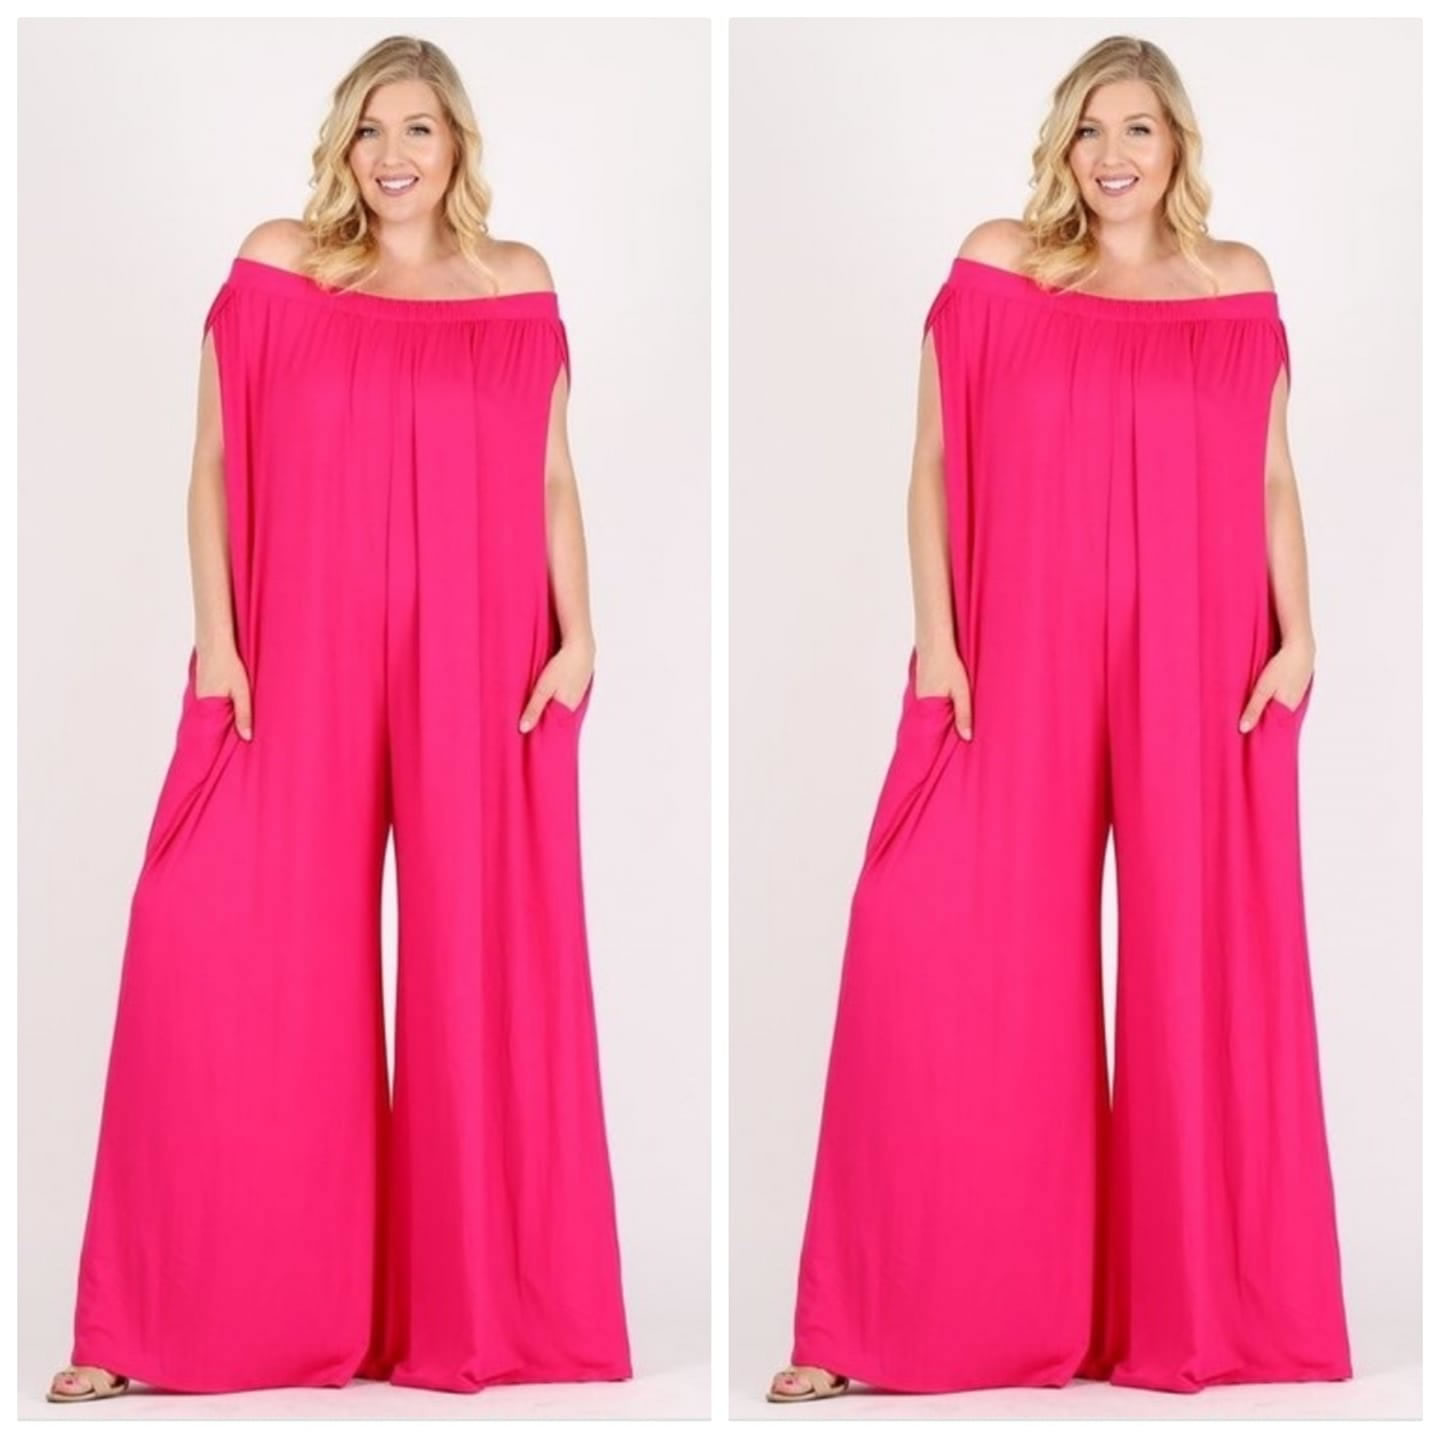 Woman in an outfit that can best be described as a pair of giant pink off-the-shoulder flare pants